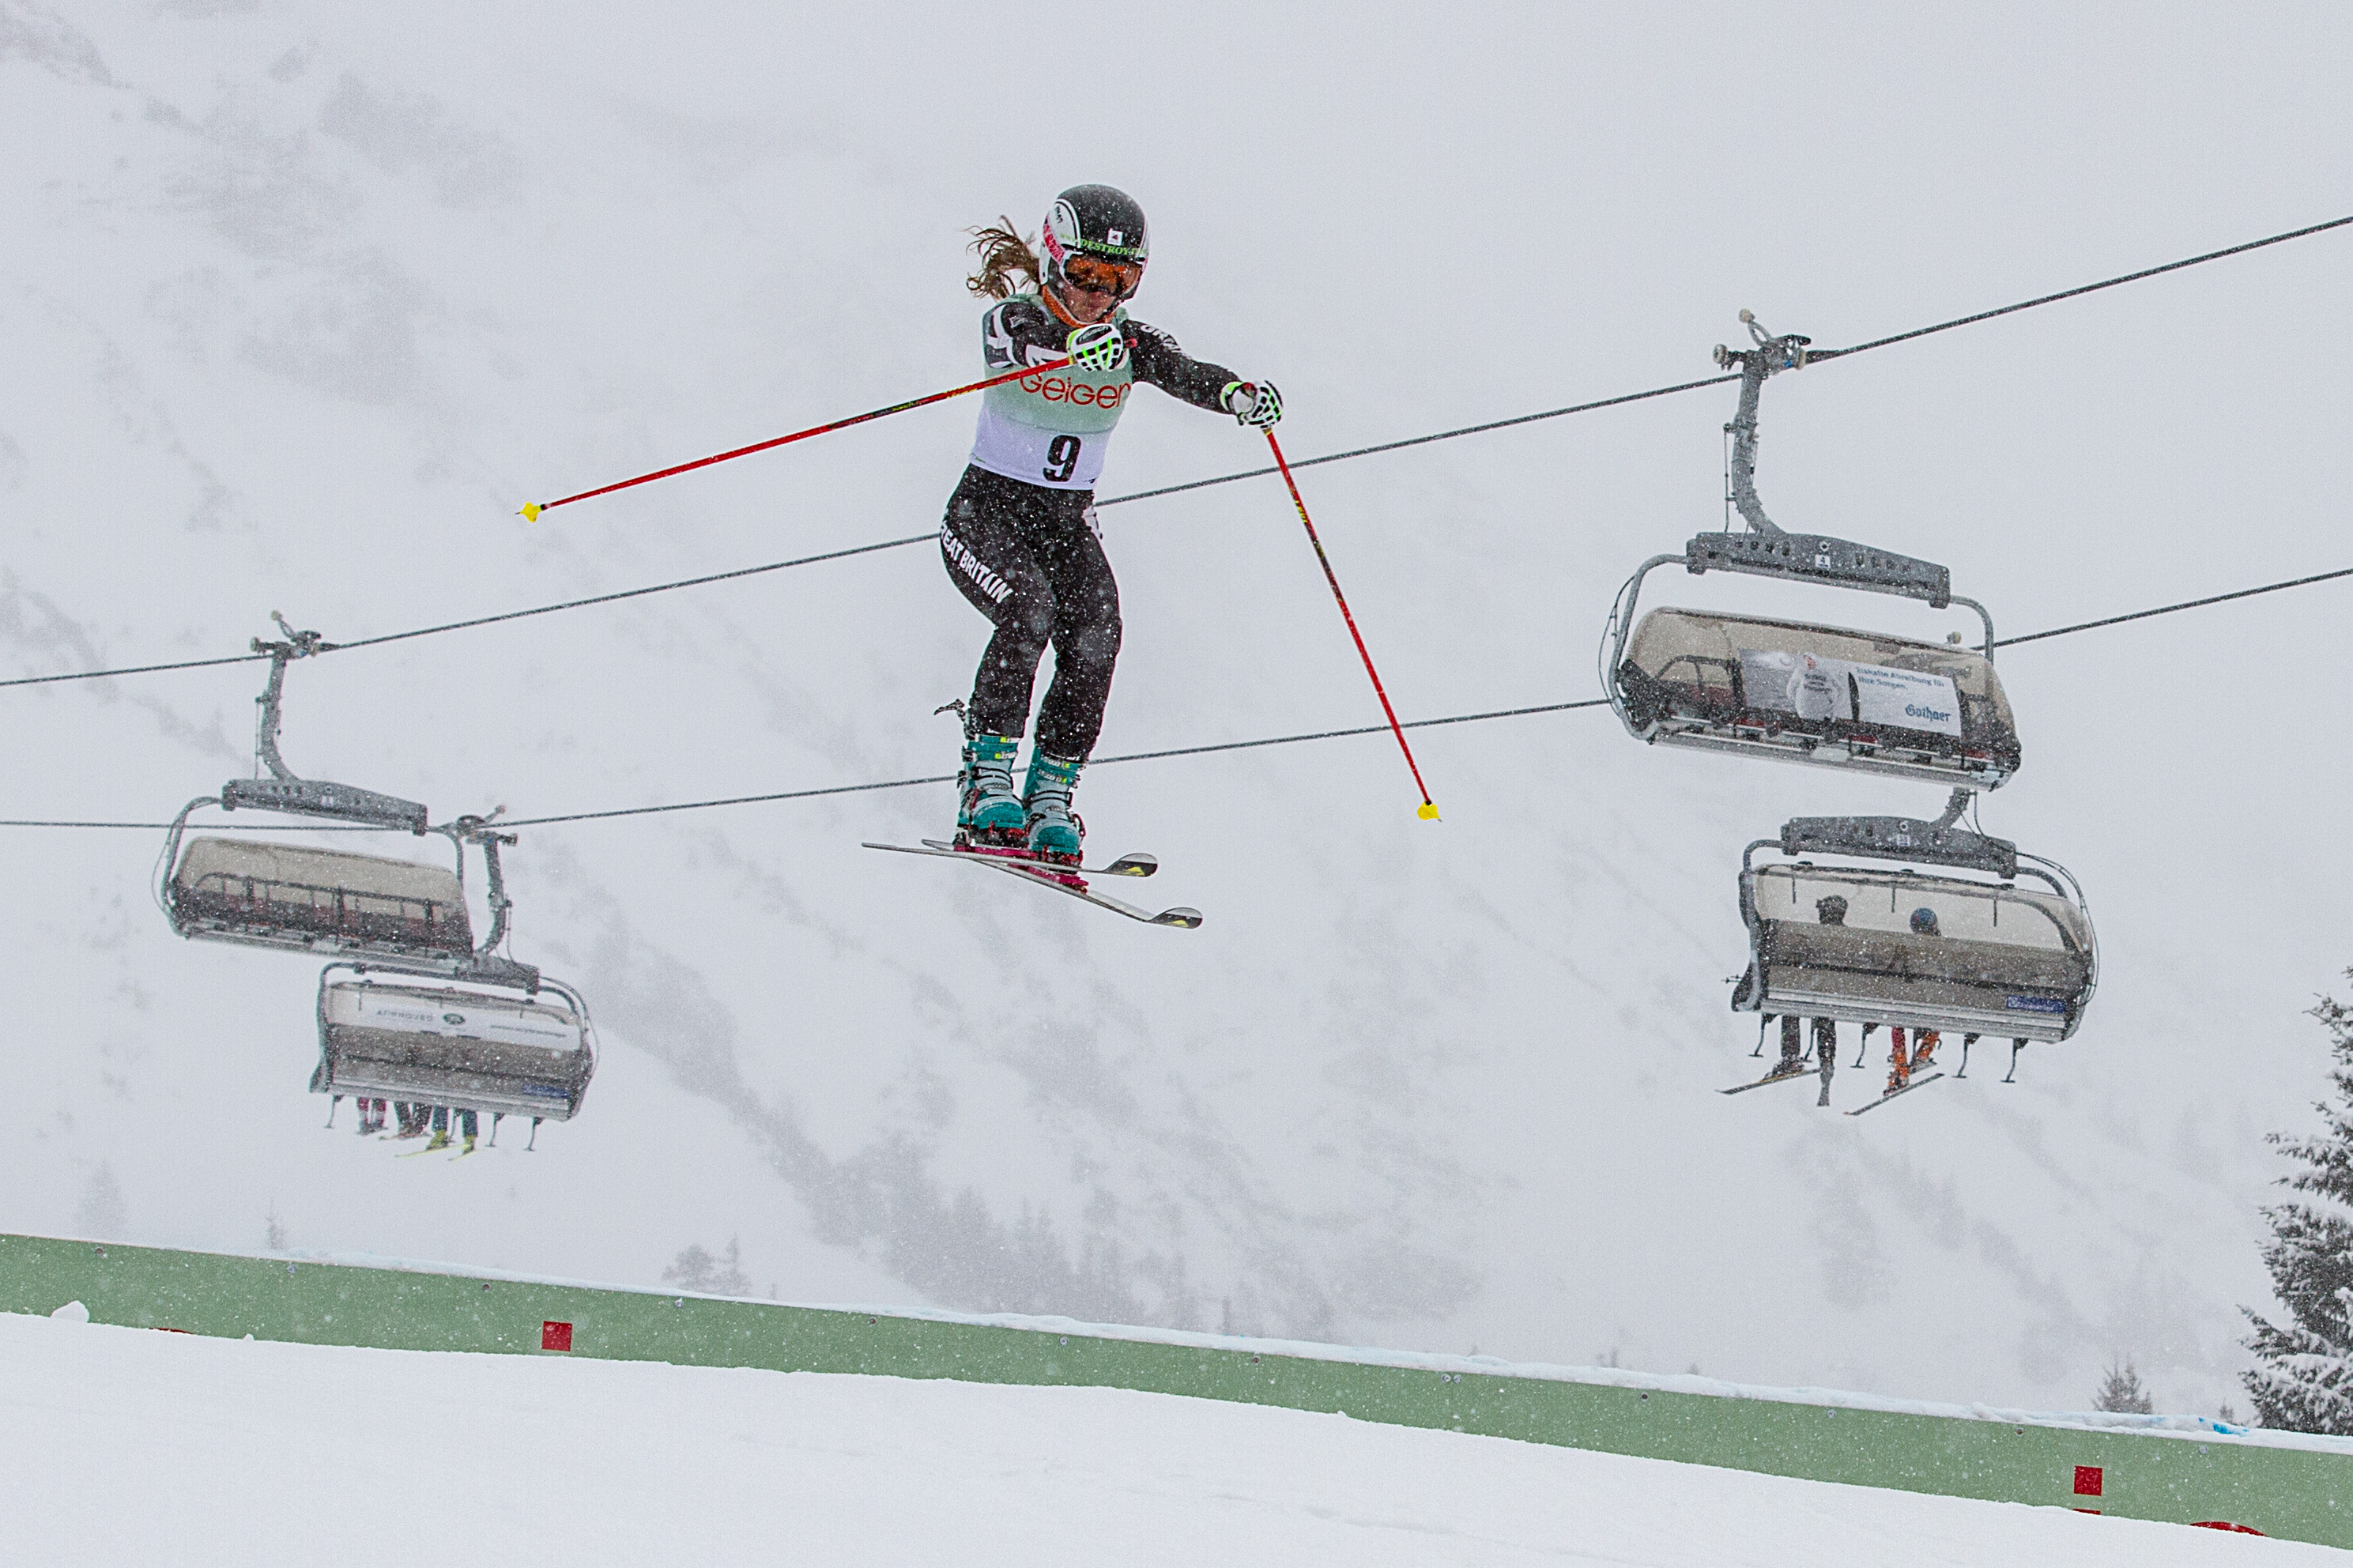 Jasmin Taylor off the jump, photo by Bernhard Krempl